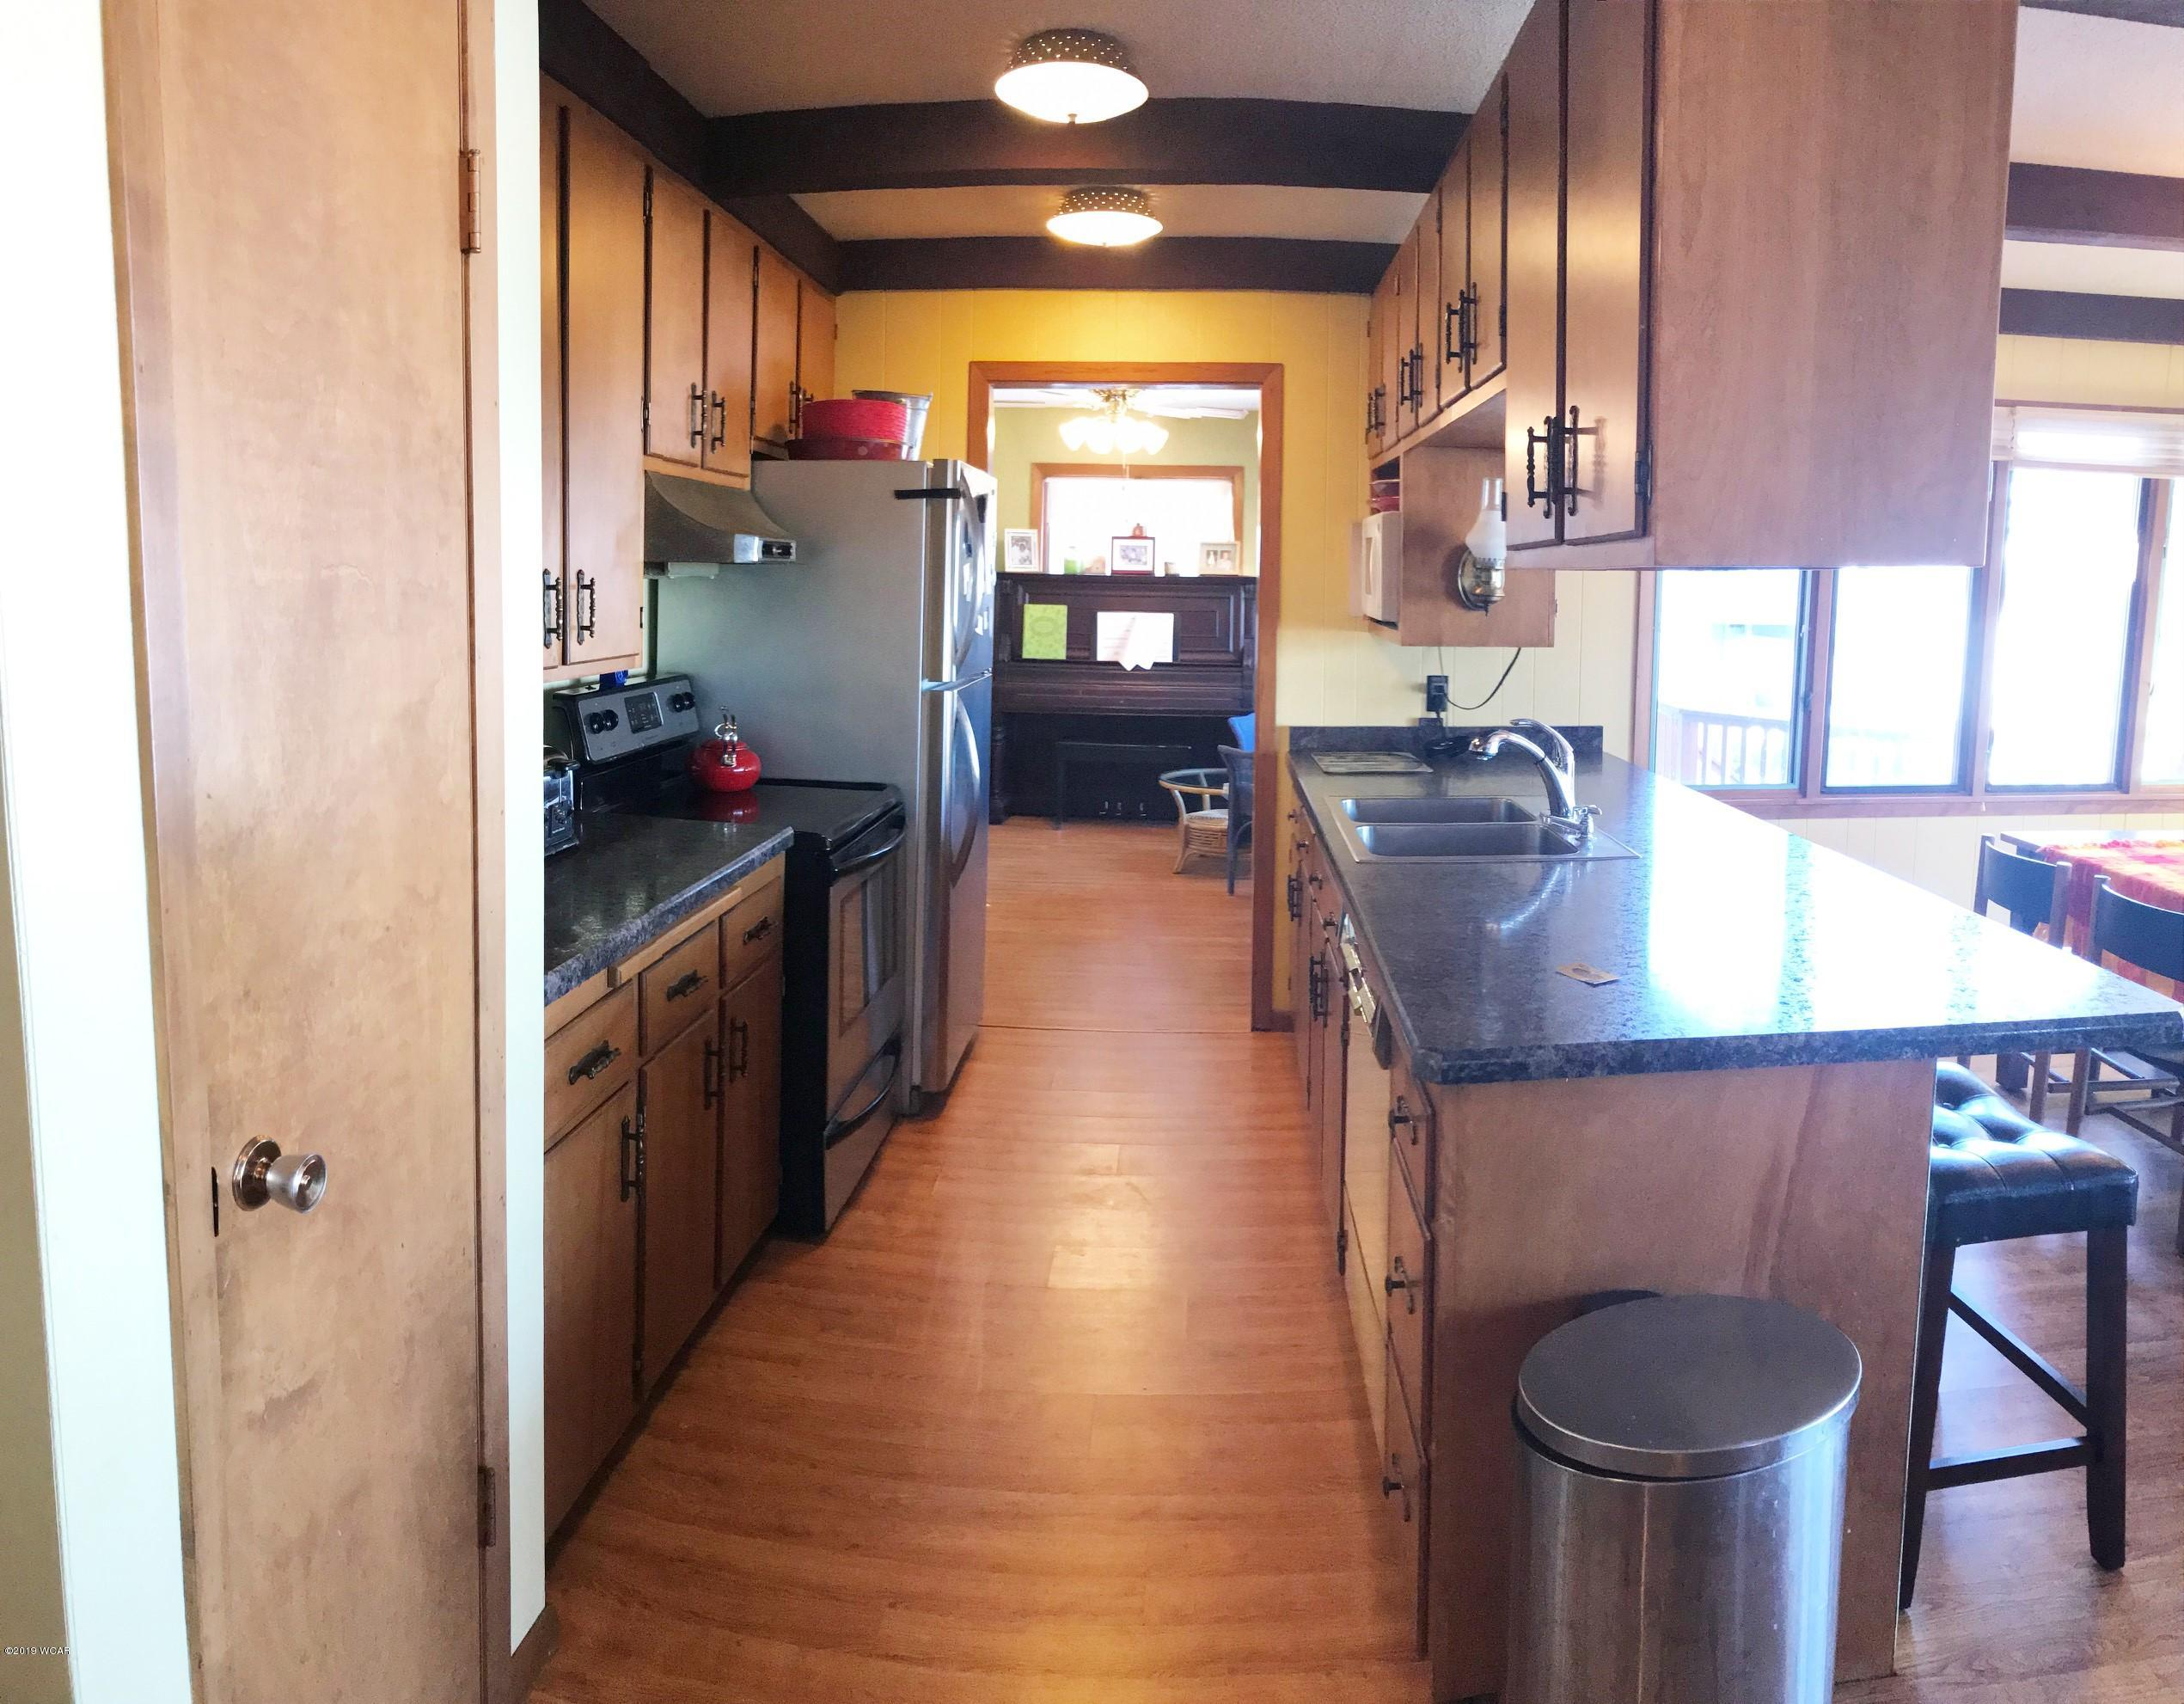 11660 44th Street,Spicer,3 Bedrooms Bedrooms,2 BathroomsBathrooms,Single Family,44th Street,6033423